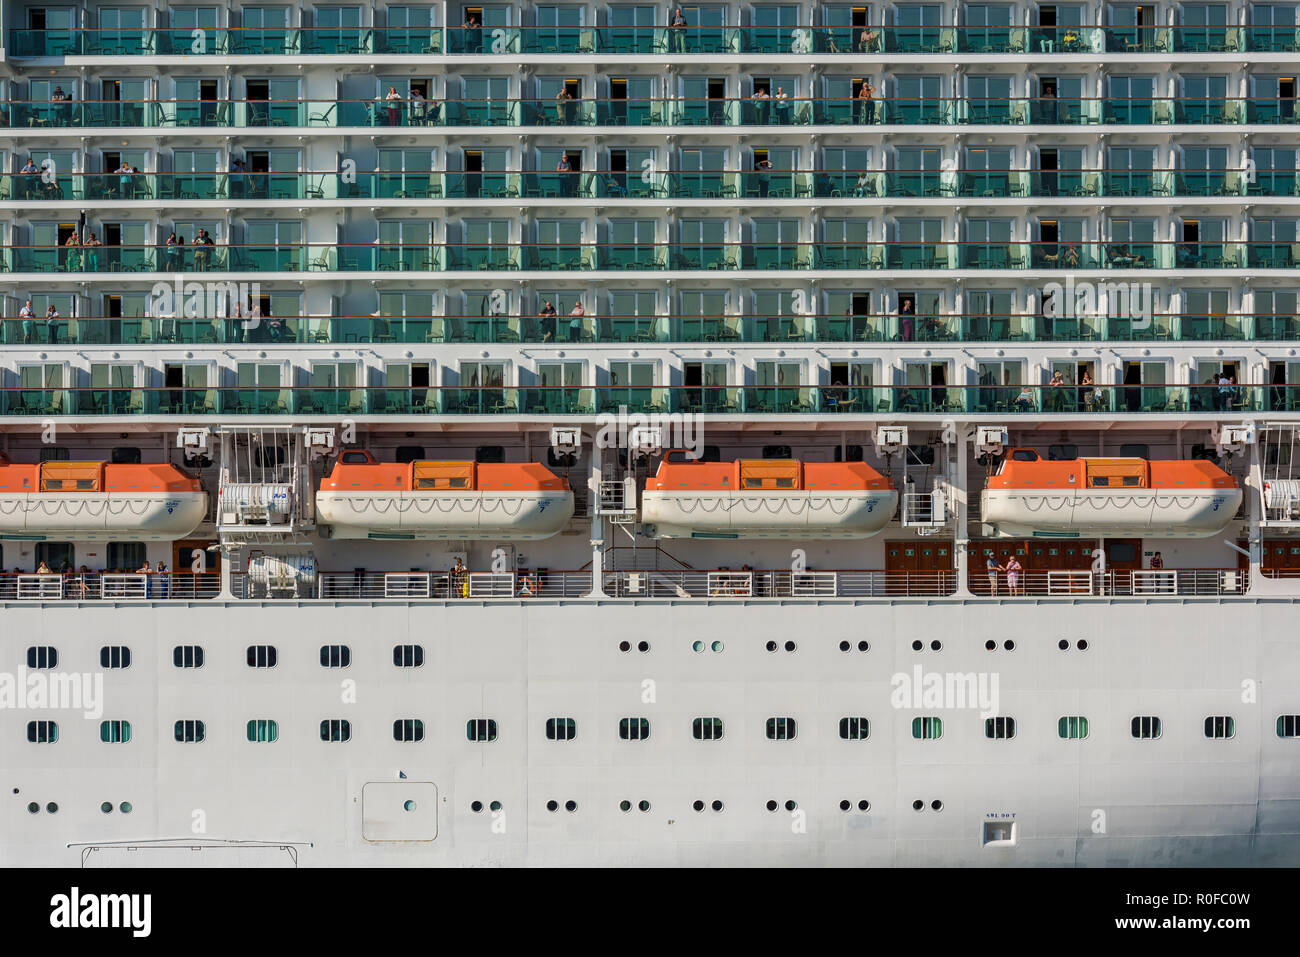 lifeboats and decks on the p and o cruising liner or cruise ship azura in the port of Southampton. - Stock Image